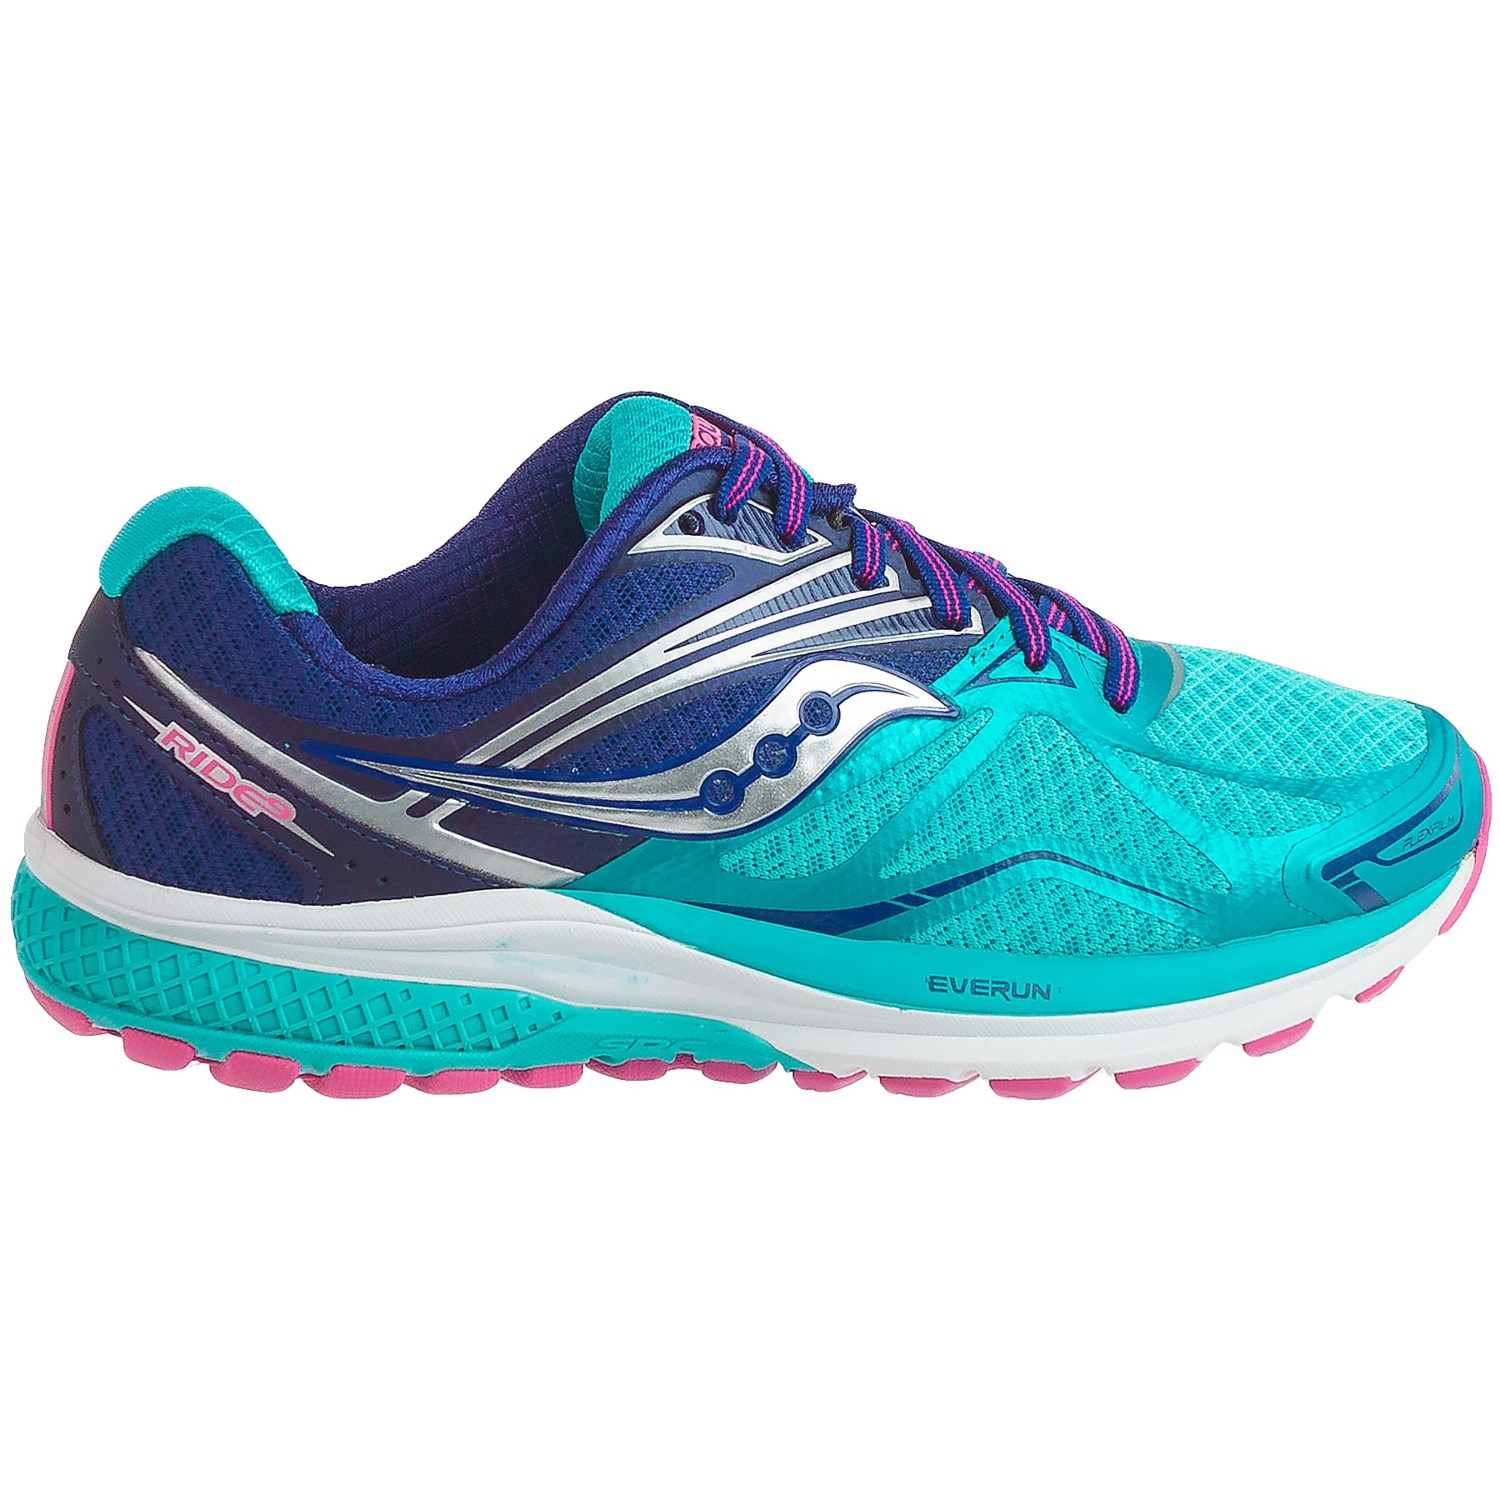 Trading Post Running Shoes